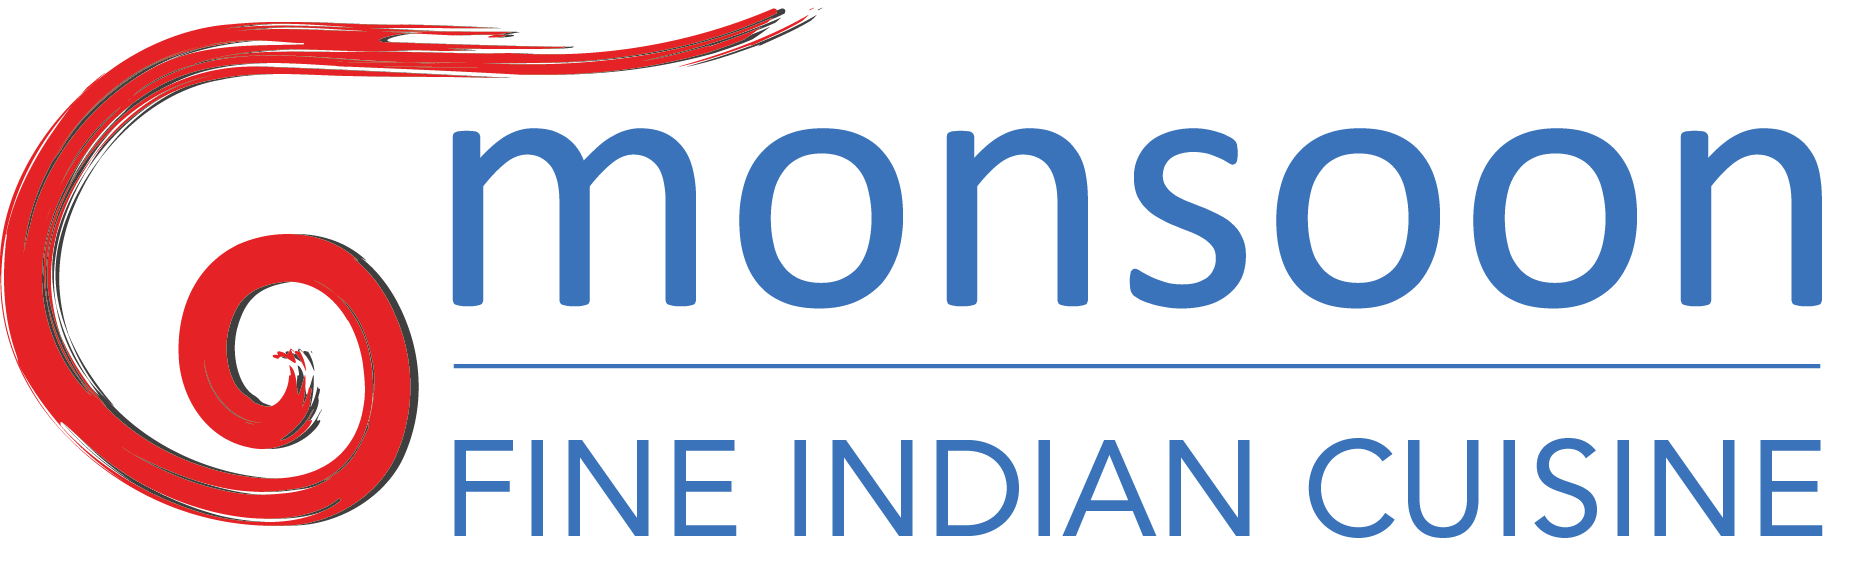 Monsoon fine Indian cuisine logo